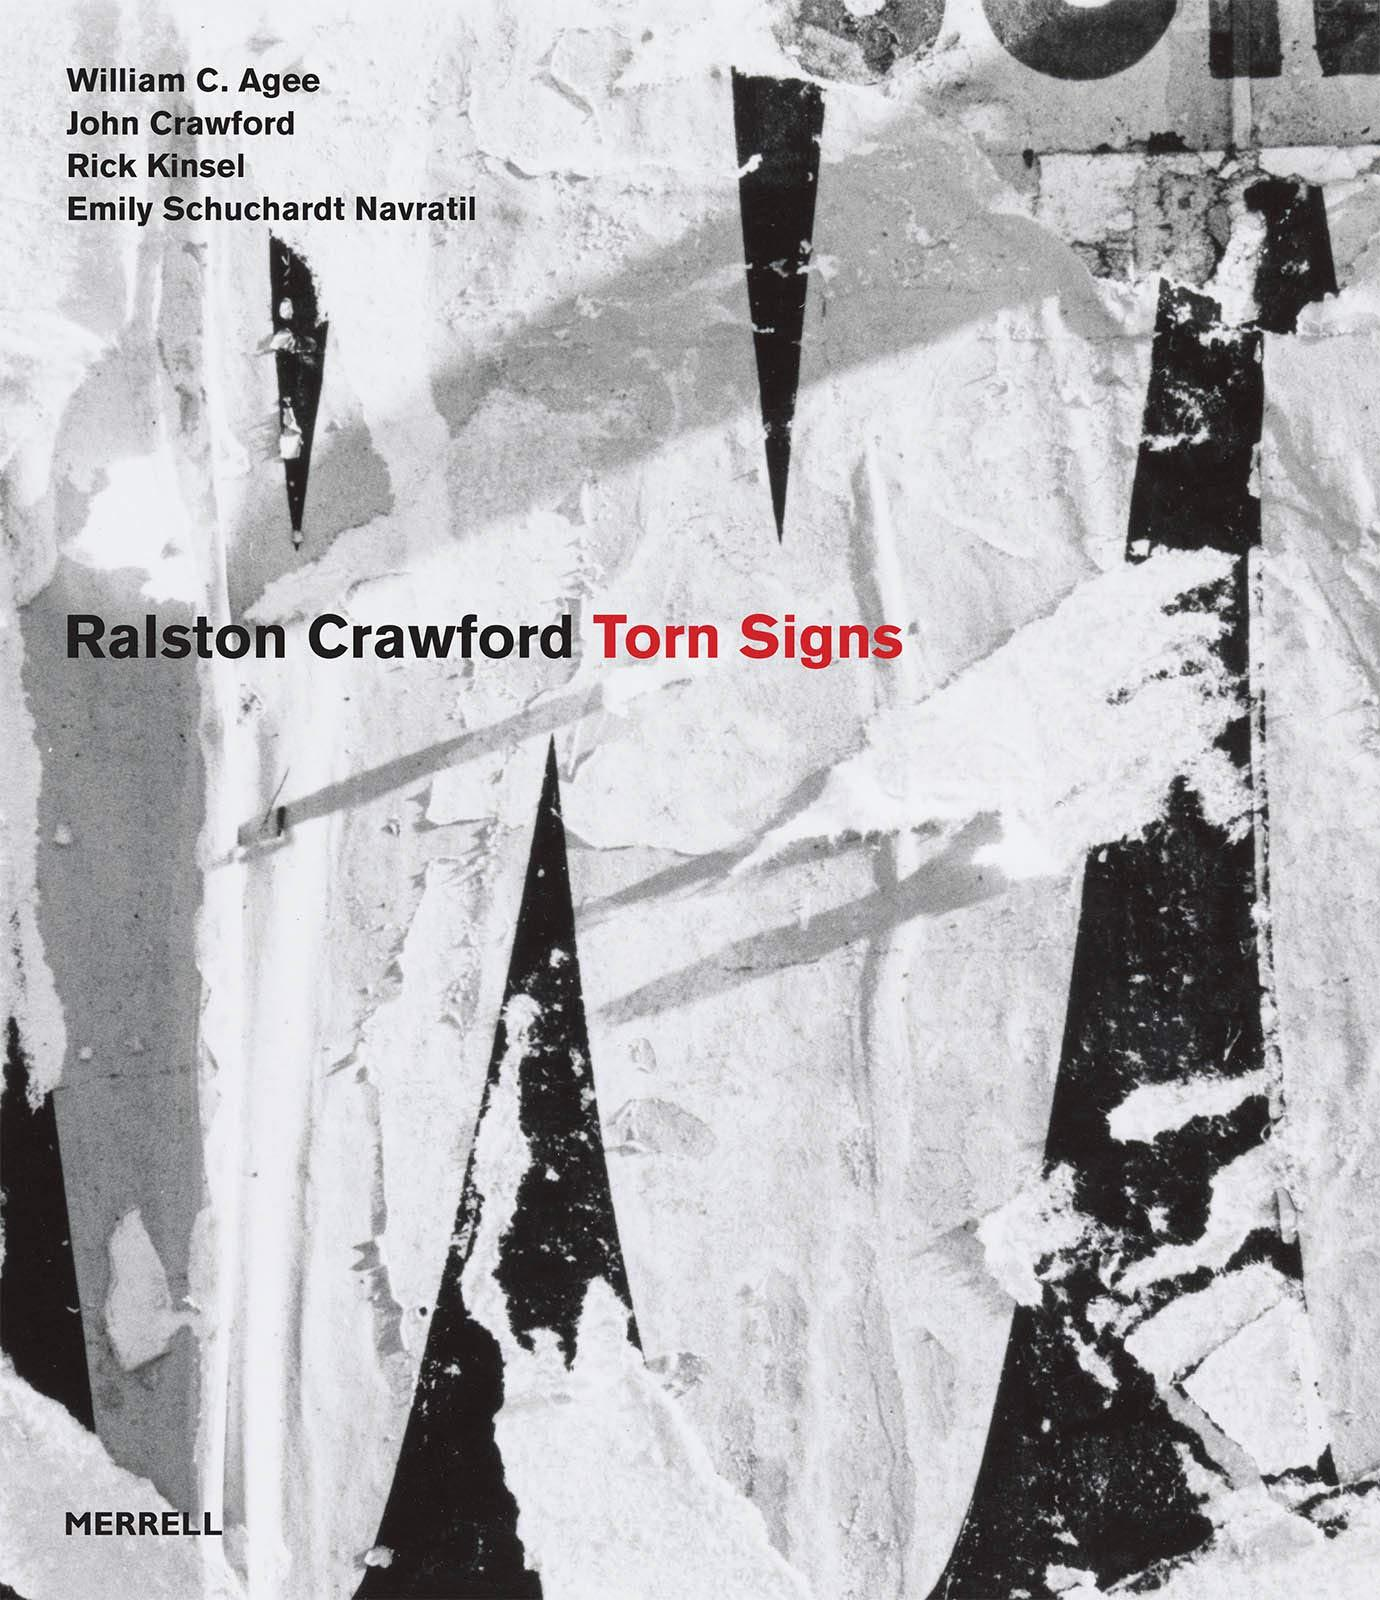 RALSTON CRAWFORD-TORN THINGS